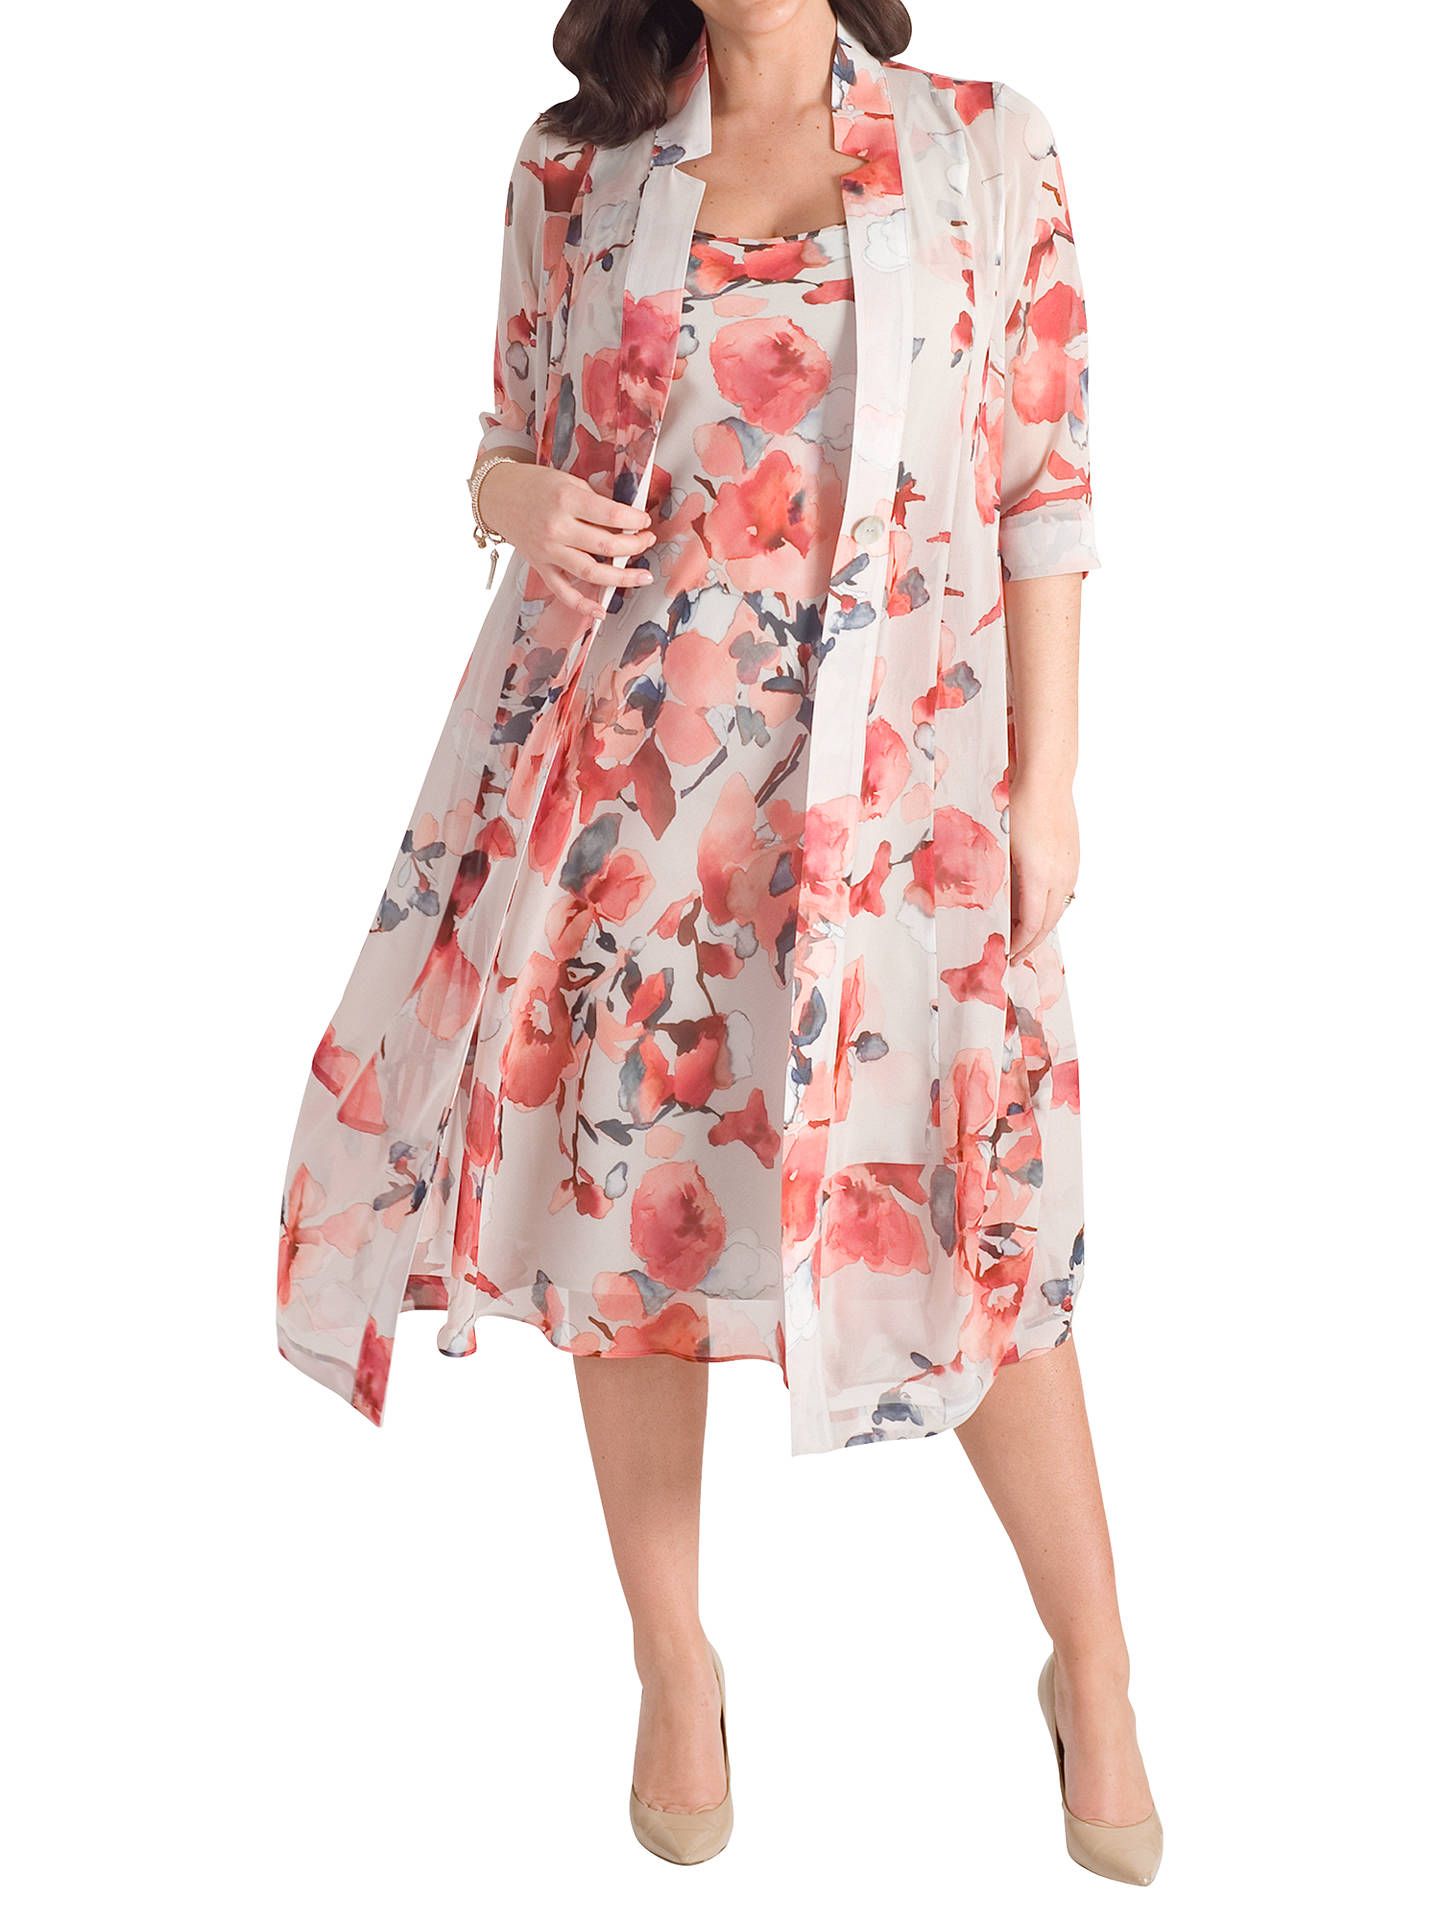 BuyChesca Floral Chiffon Dress, Grey/Red, 12 Online at johnlewis.com